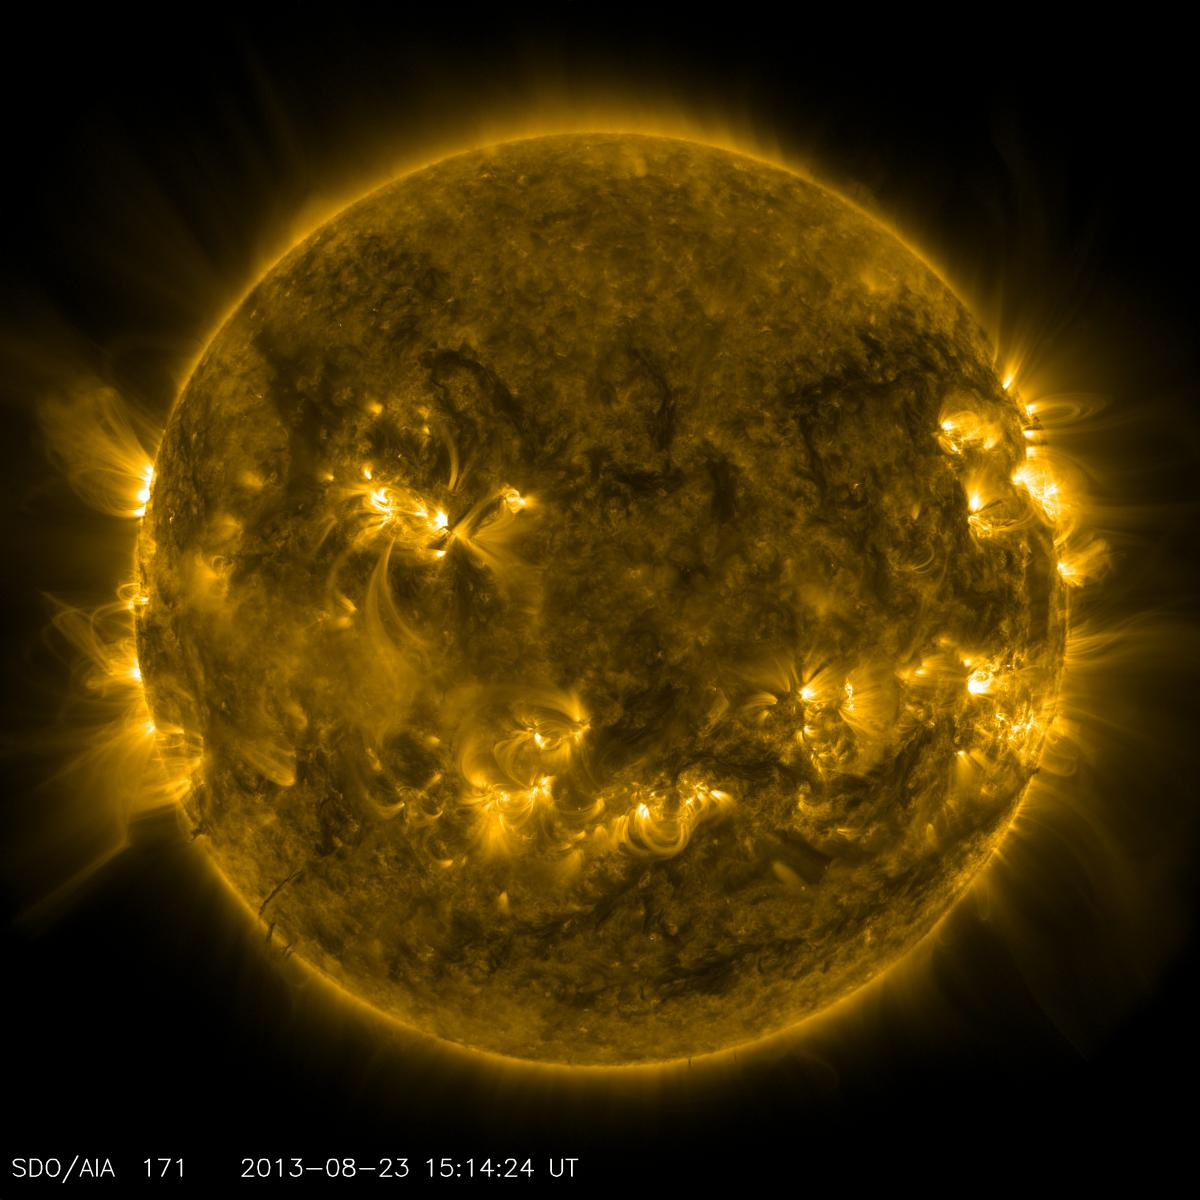 This channel is particularly good at showing coronal loops — the arcs extending off the sun where plasma moves along magnetic field lines. The brightest spots seen here are places where the magnetic field near the surface is exceptionally strong.